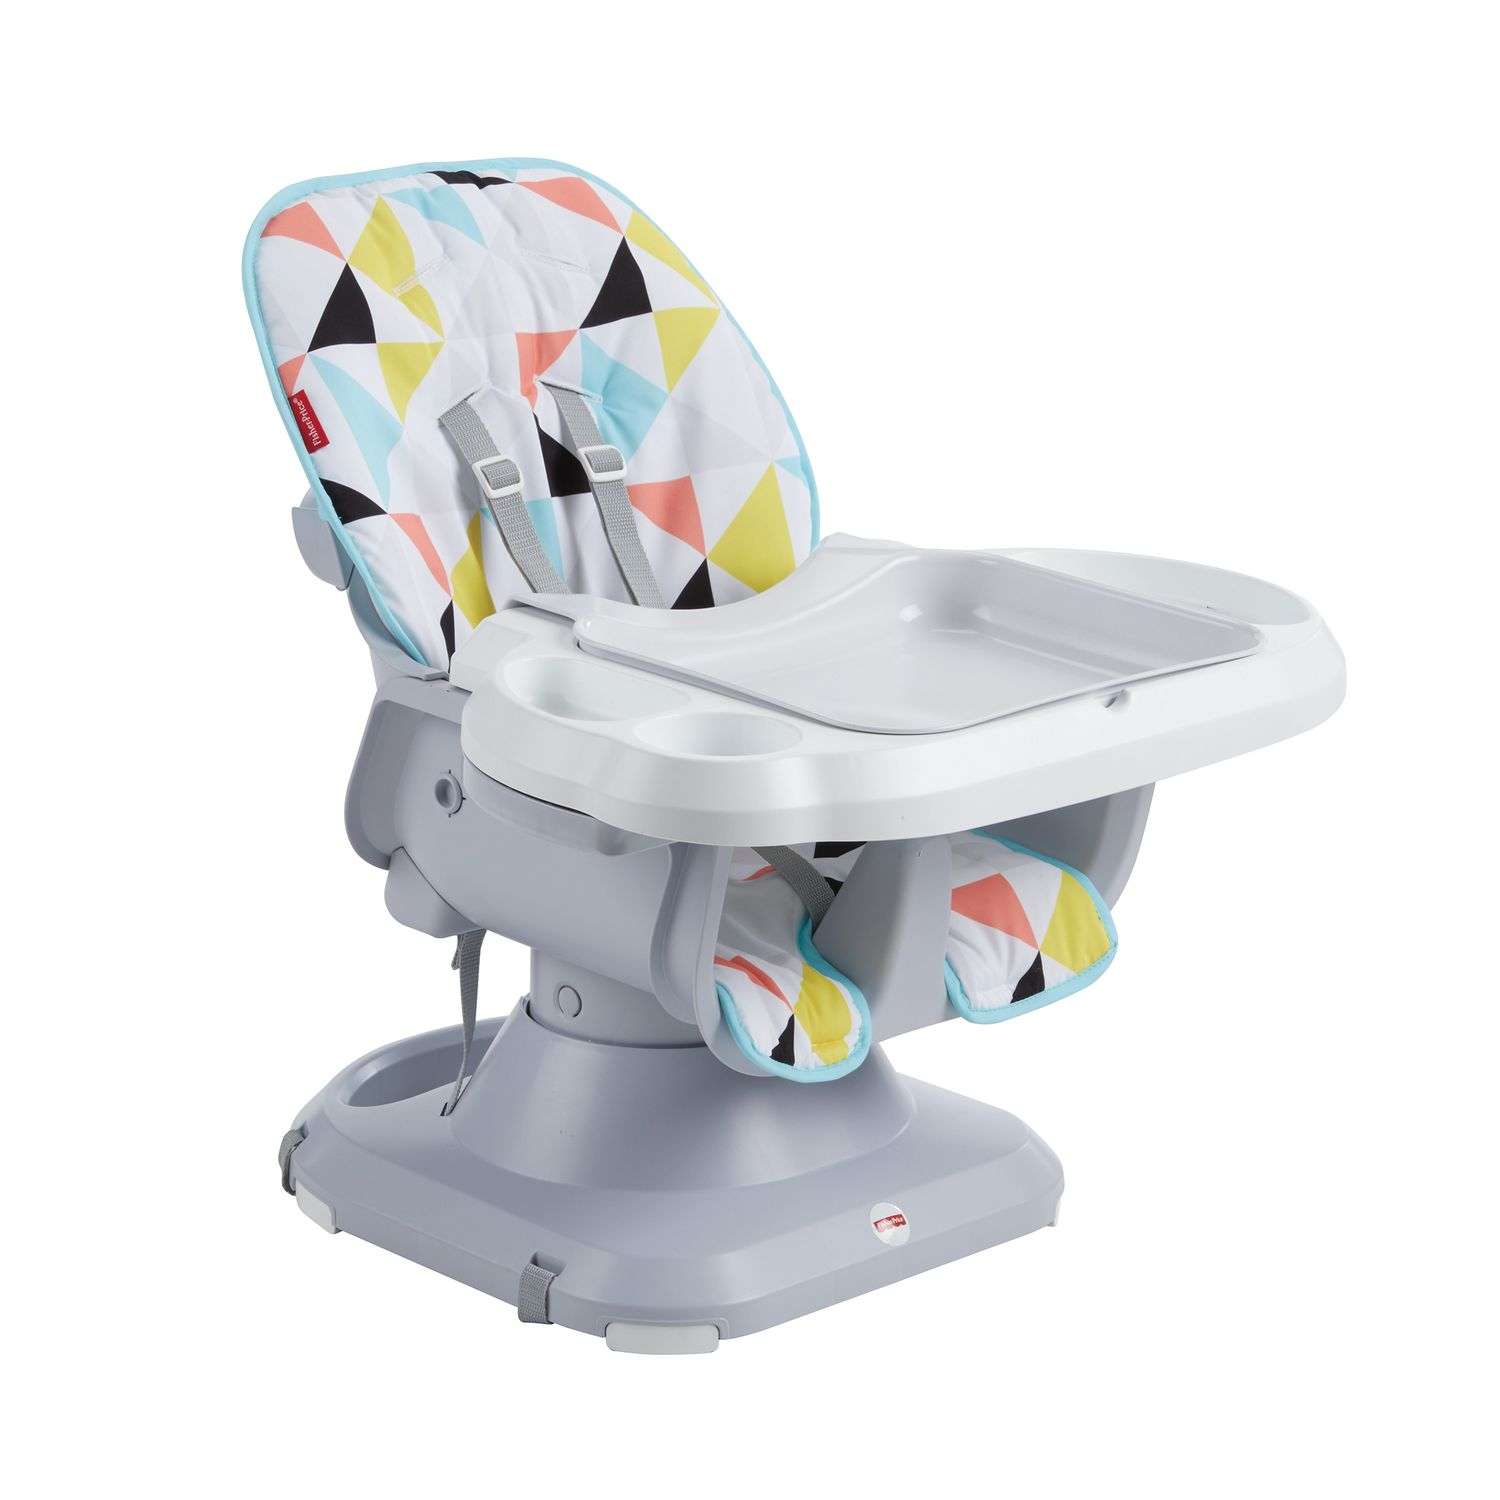 Fisher price precious planet high chair - Fisherprice Spacesaver High Chair